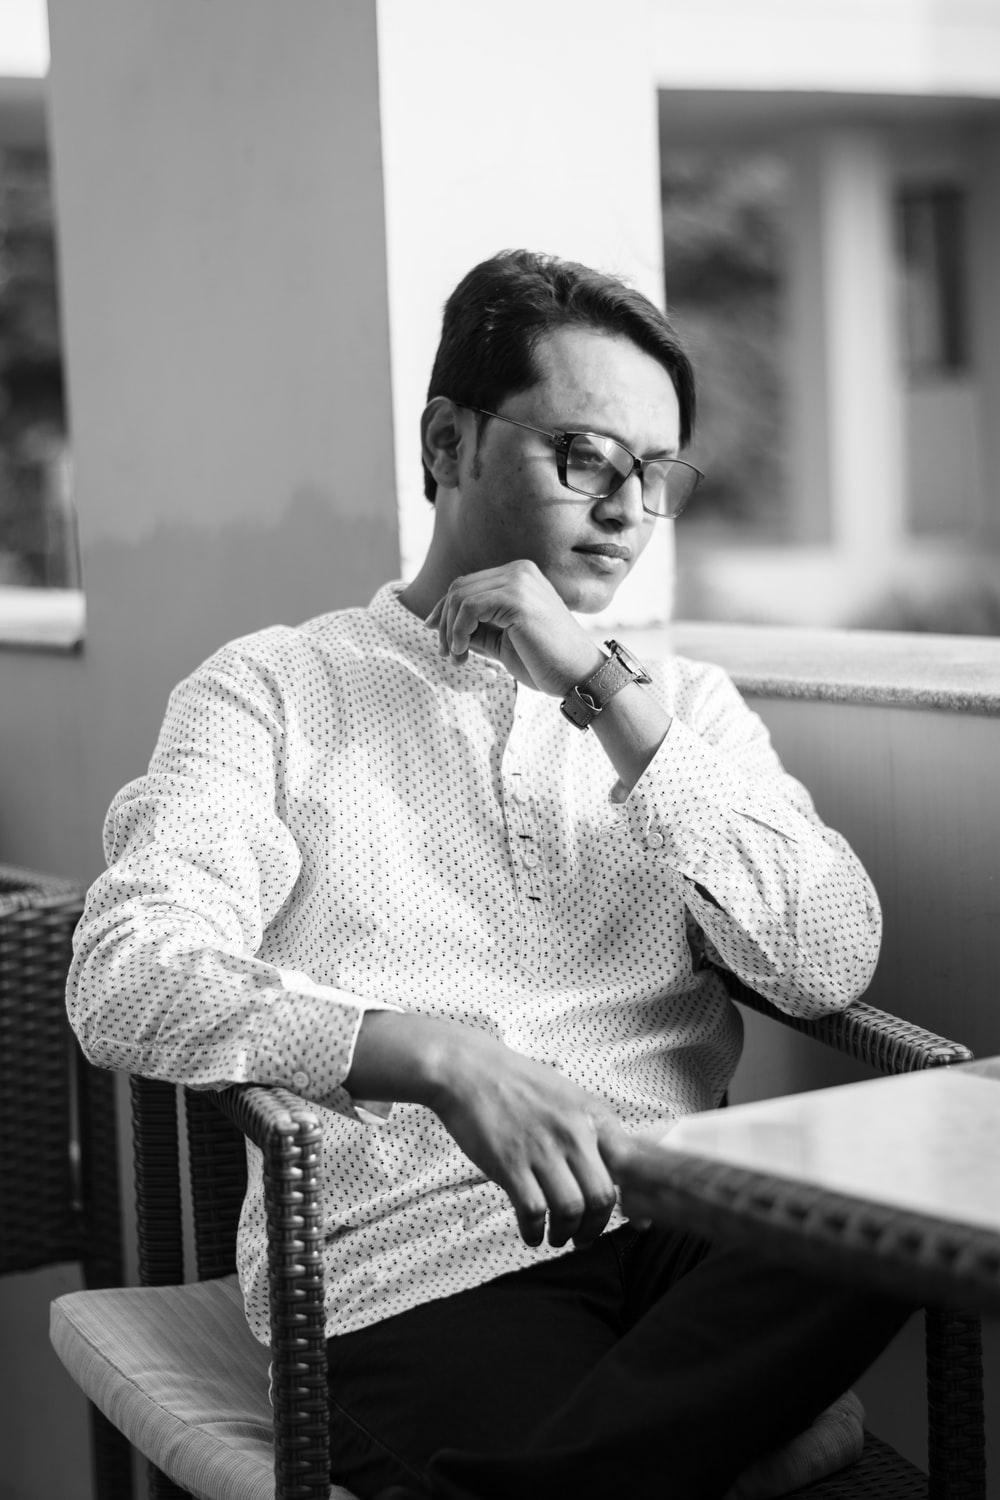 grayscale photography of man wearing long-sleeved shirt sitting with crossed legs near table